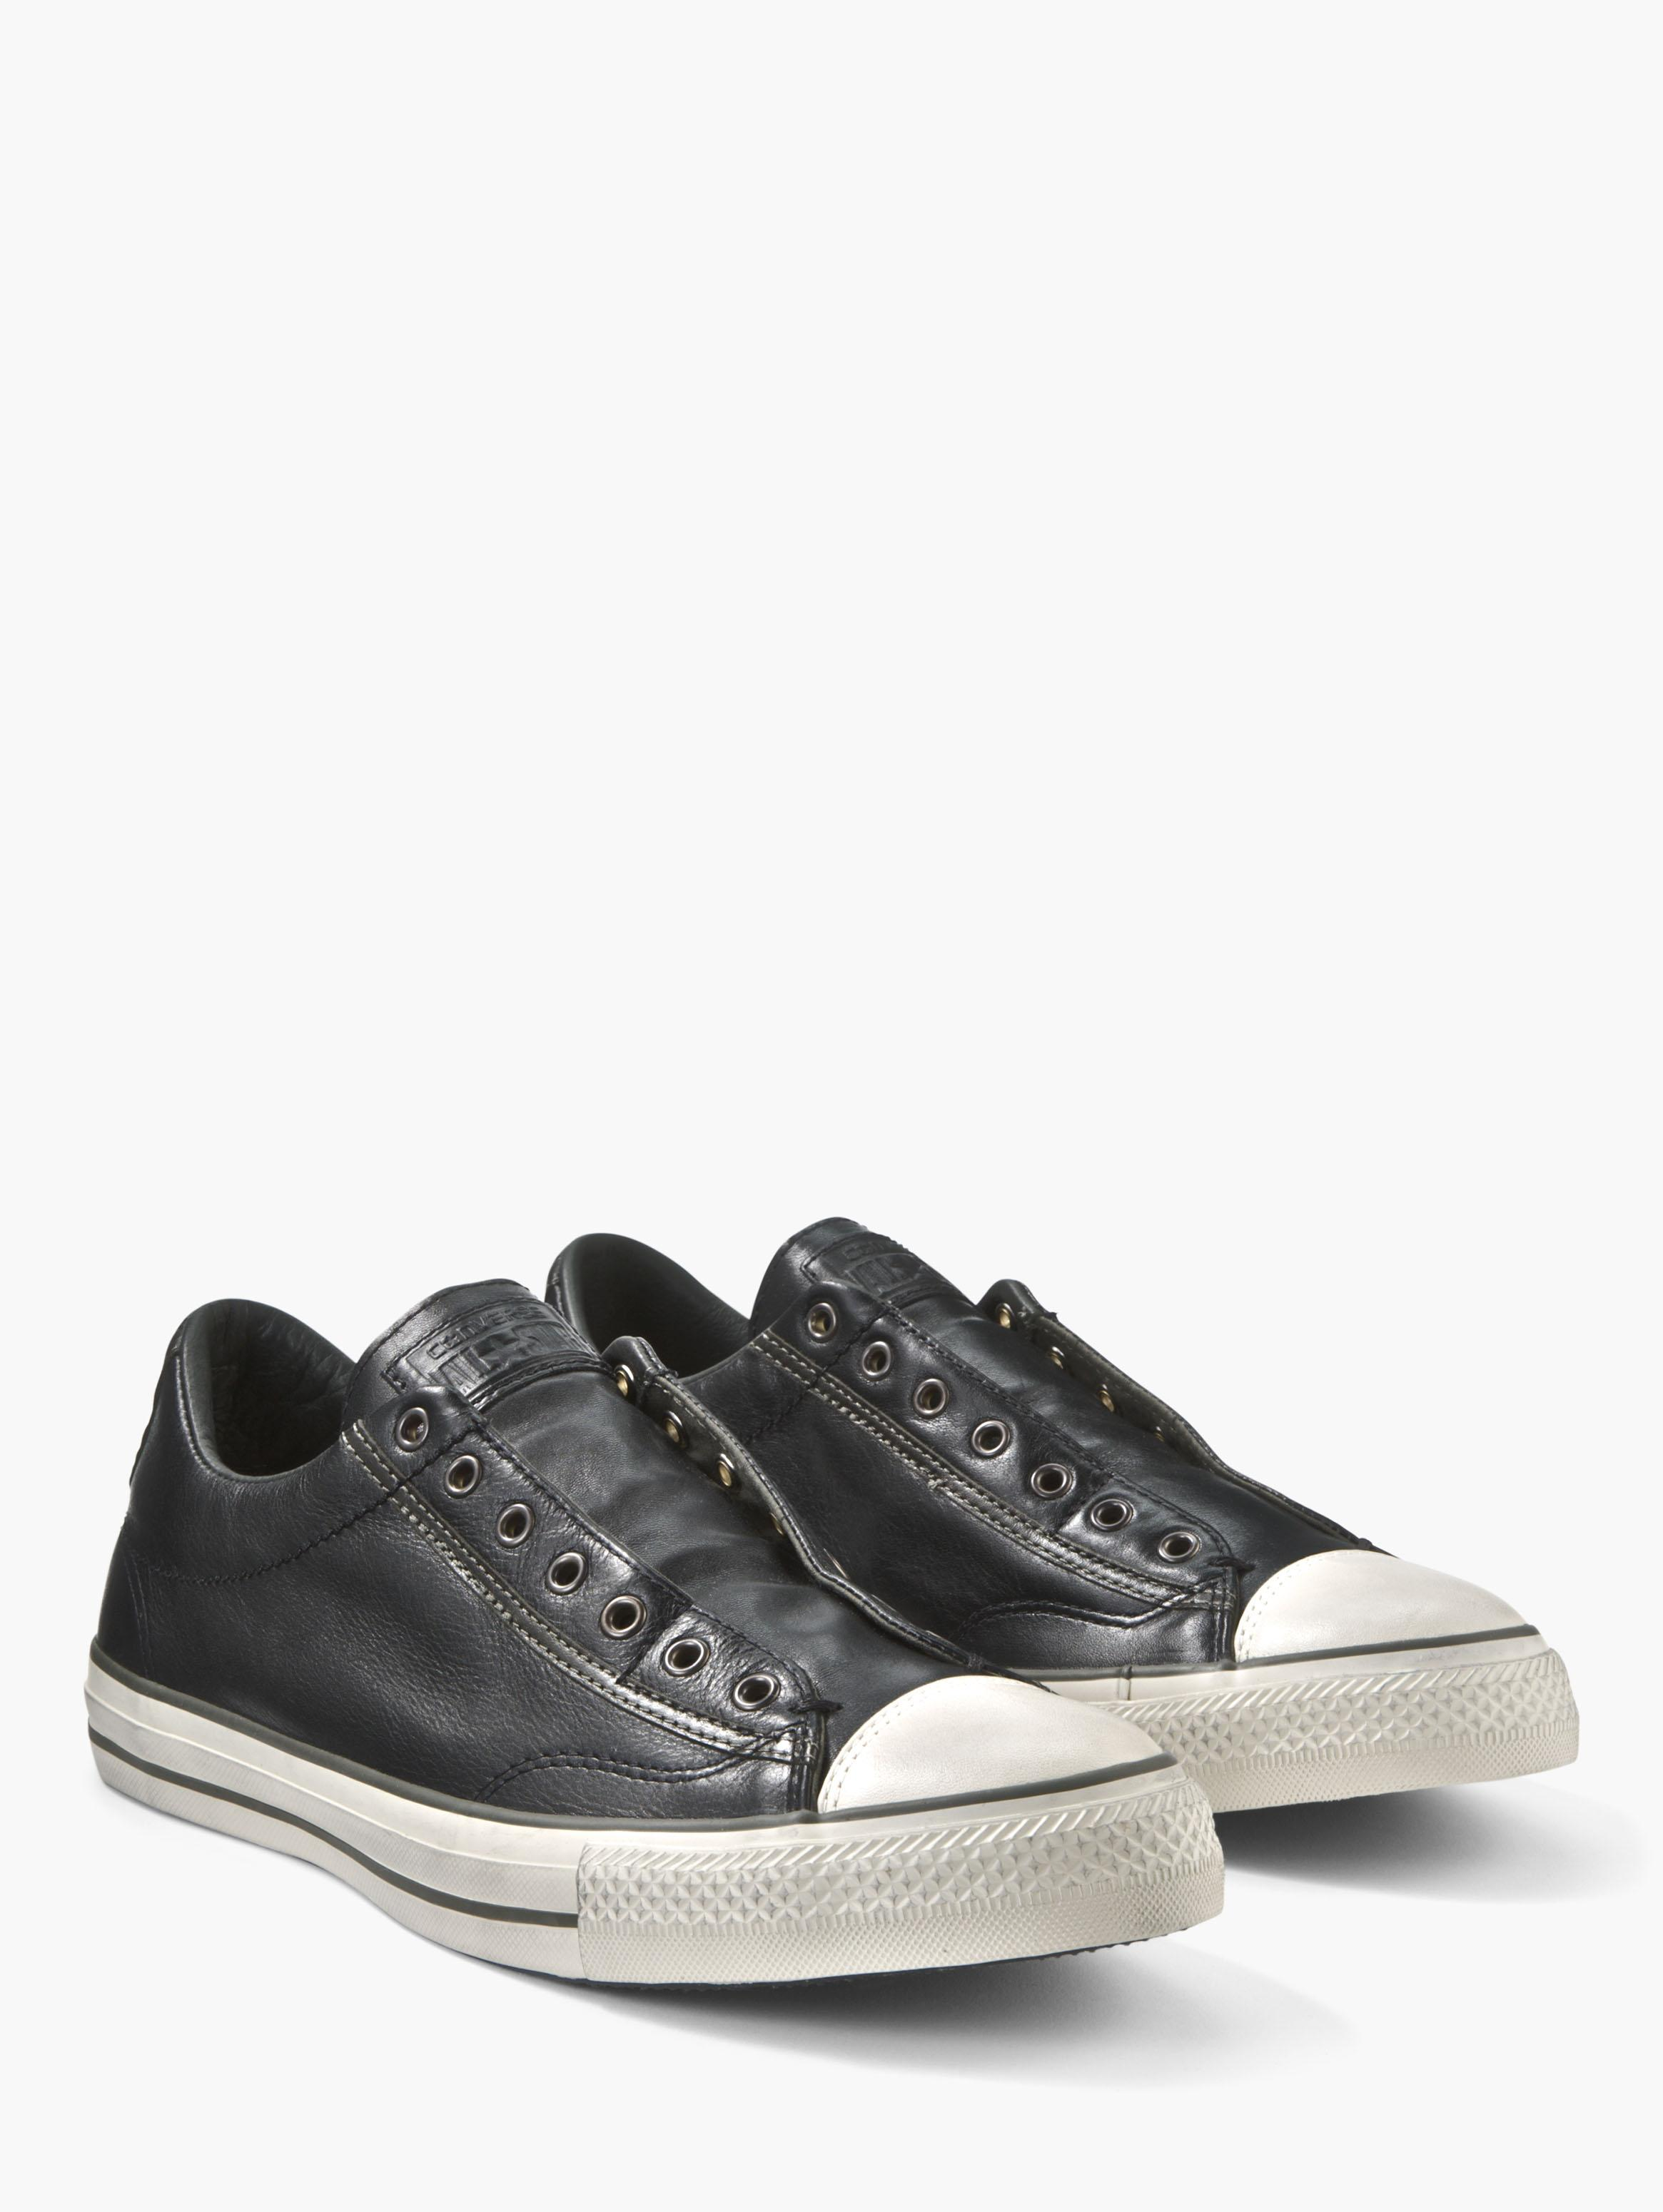 John Varvatos Men\'s Shoes and Sneakers at MenStyle USA